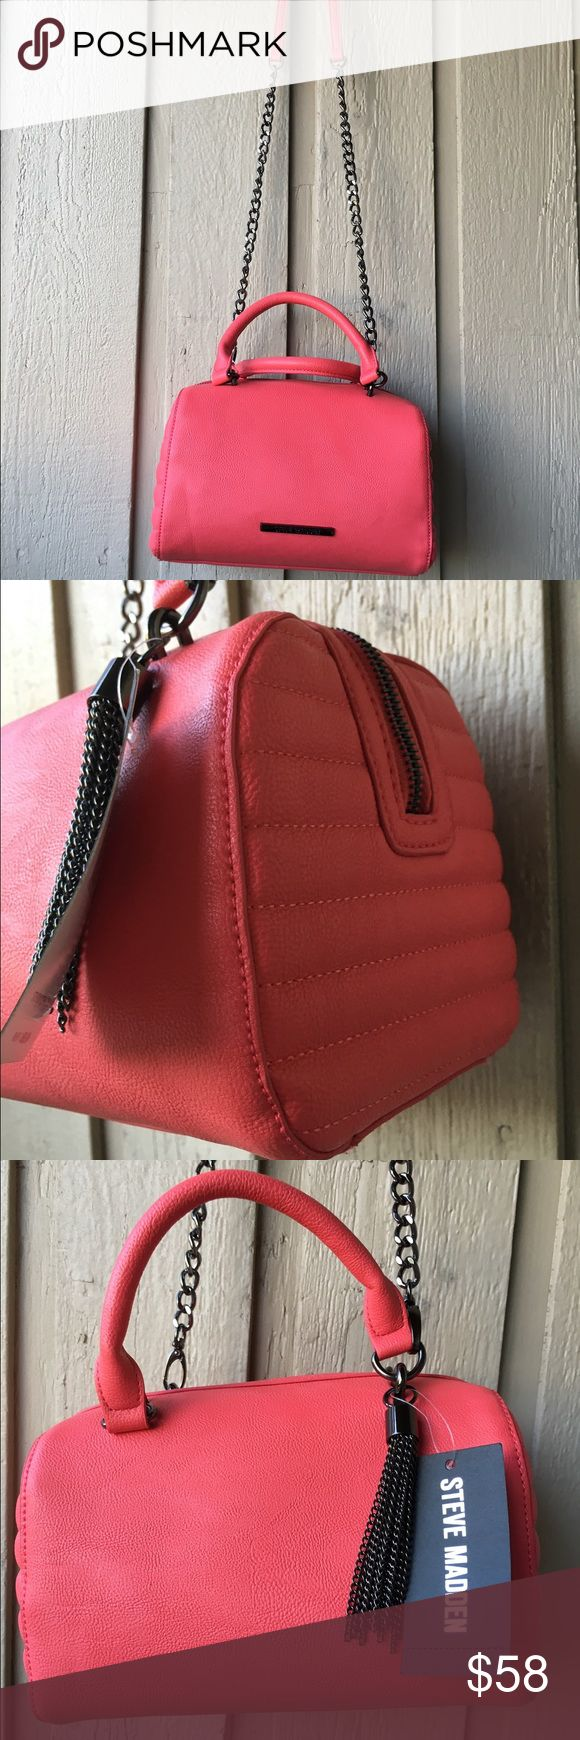 NWT Steve Madden Coral Bchain Crossbody Cute Boston bag in coral color in brand new condition. The chain is in stylish black colour. Steve Madden Bags Crossbody Bags